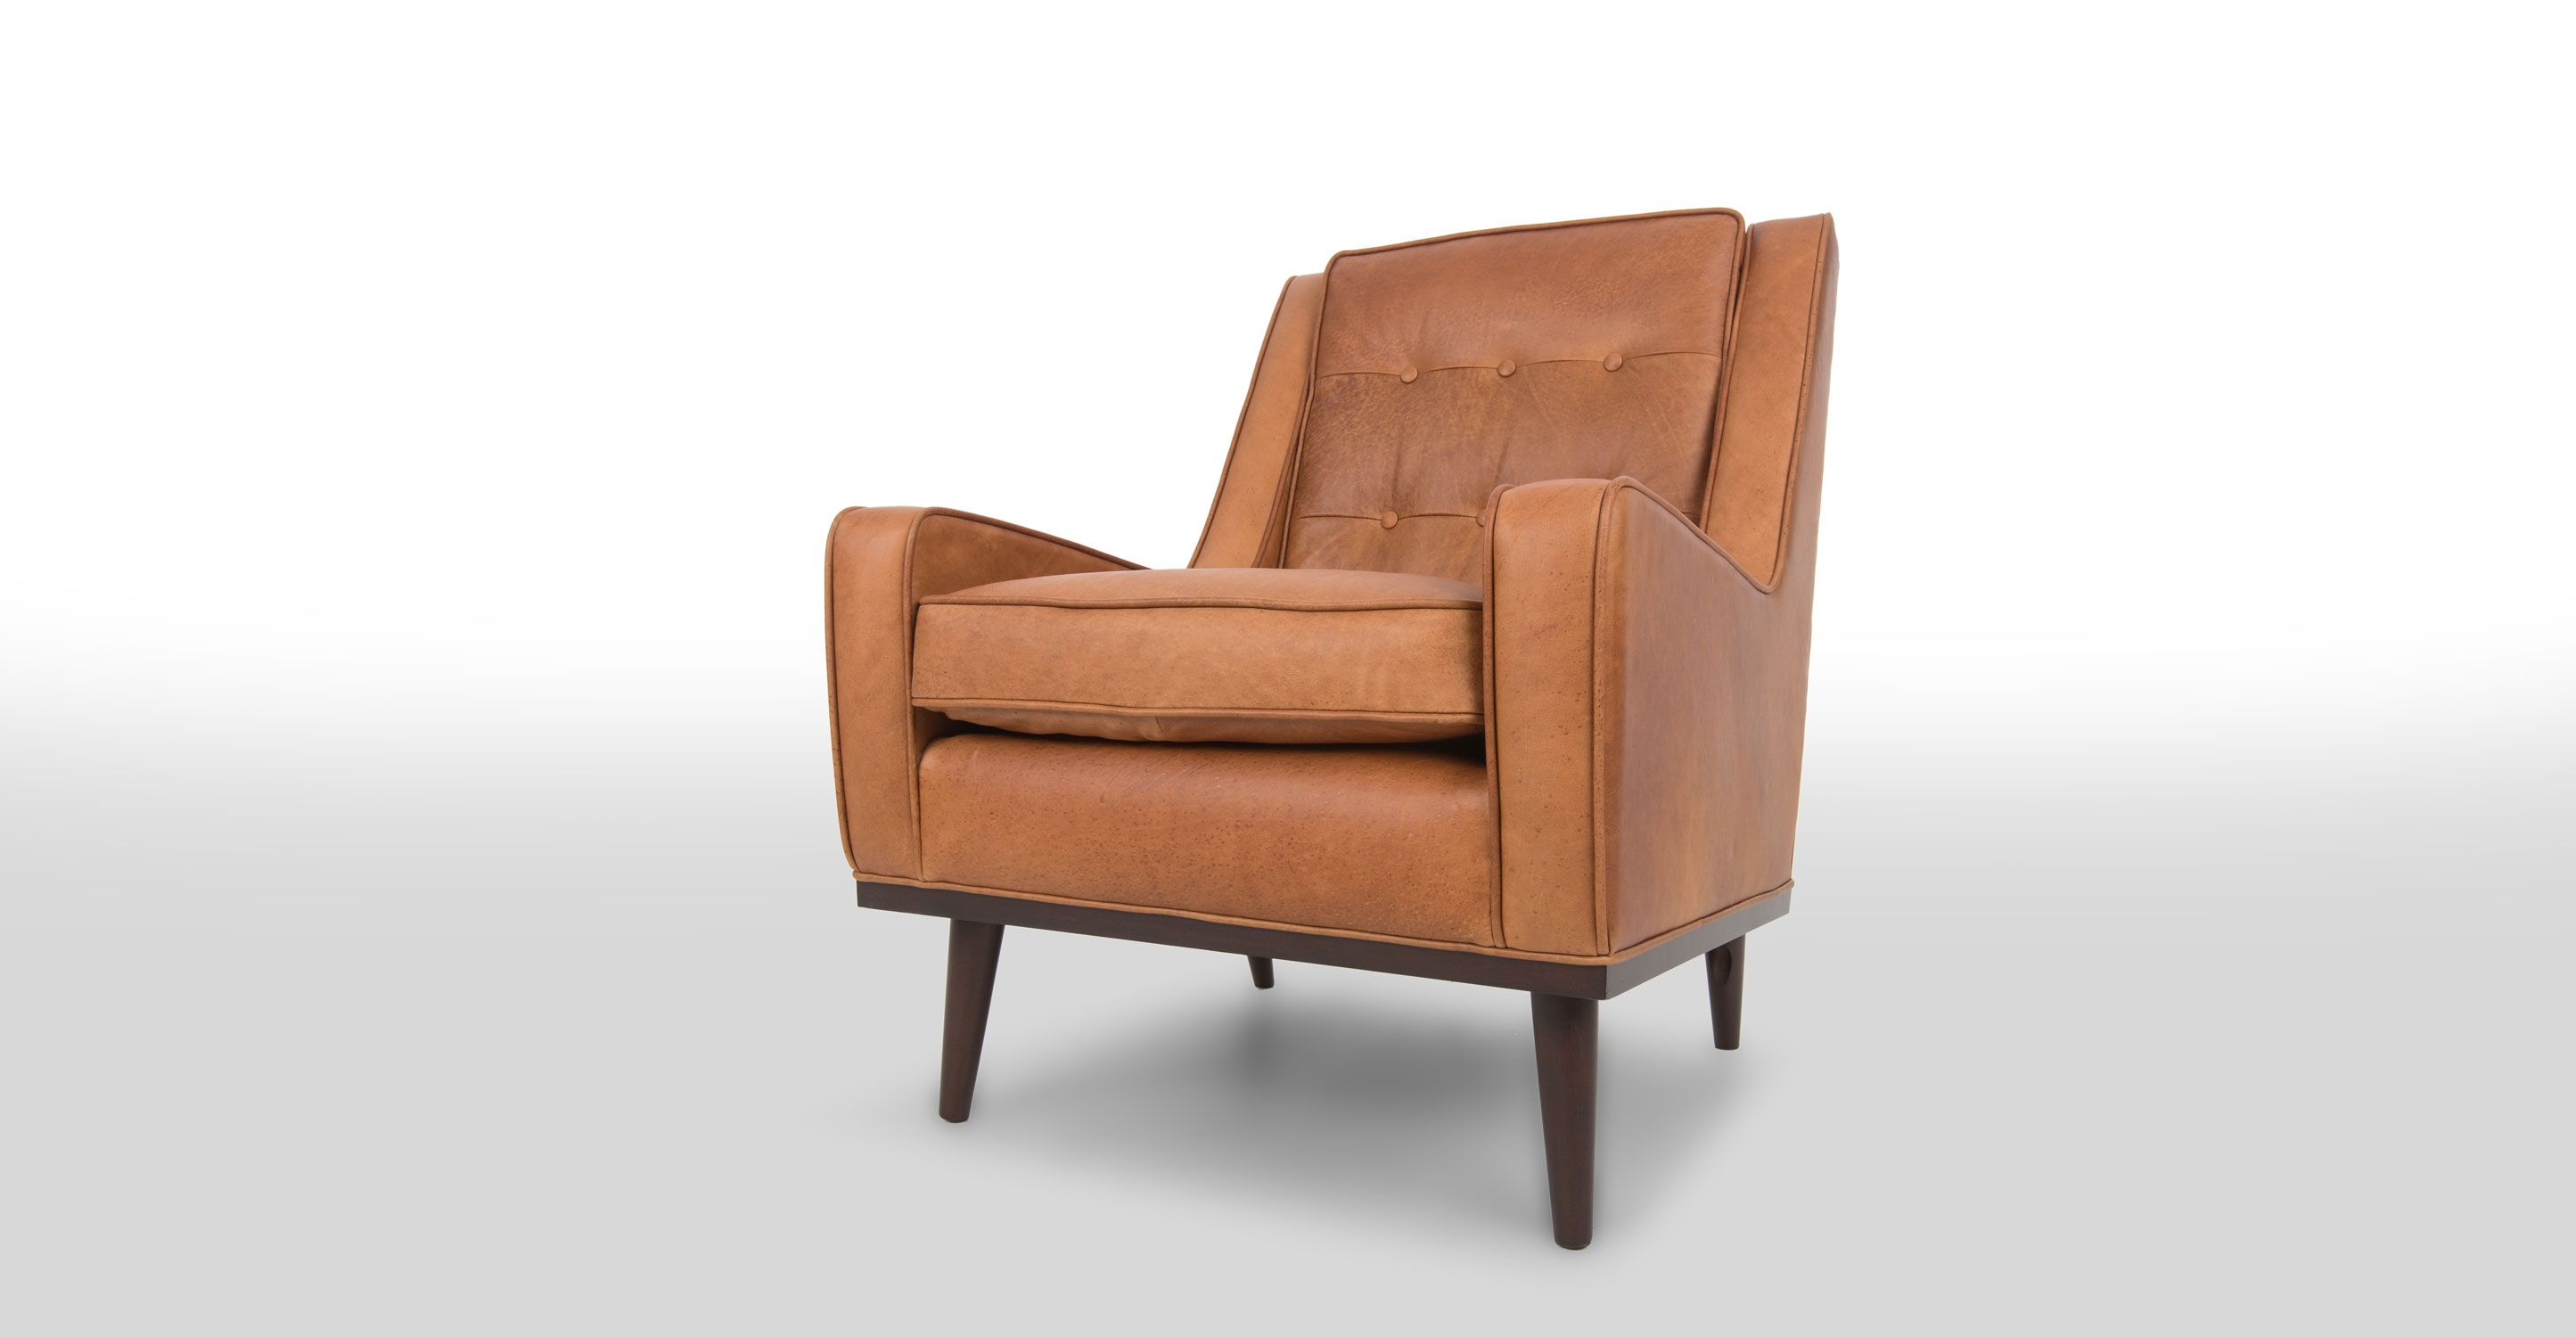 Nina Charme Tan Armchair Scandinavian Furniture Armchair